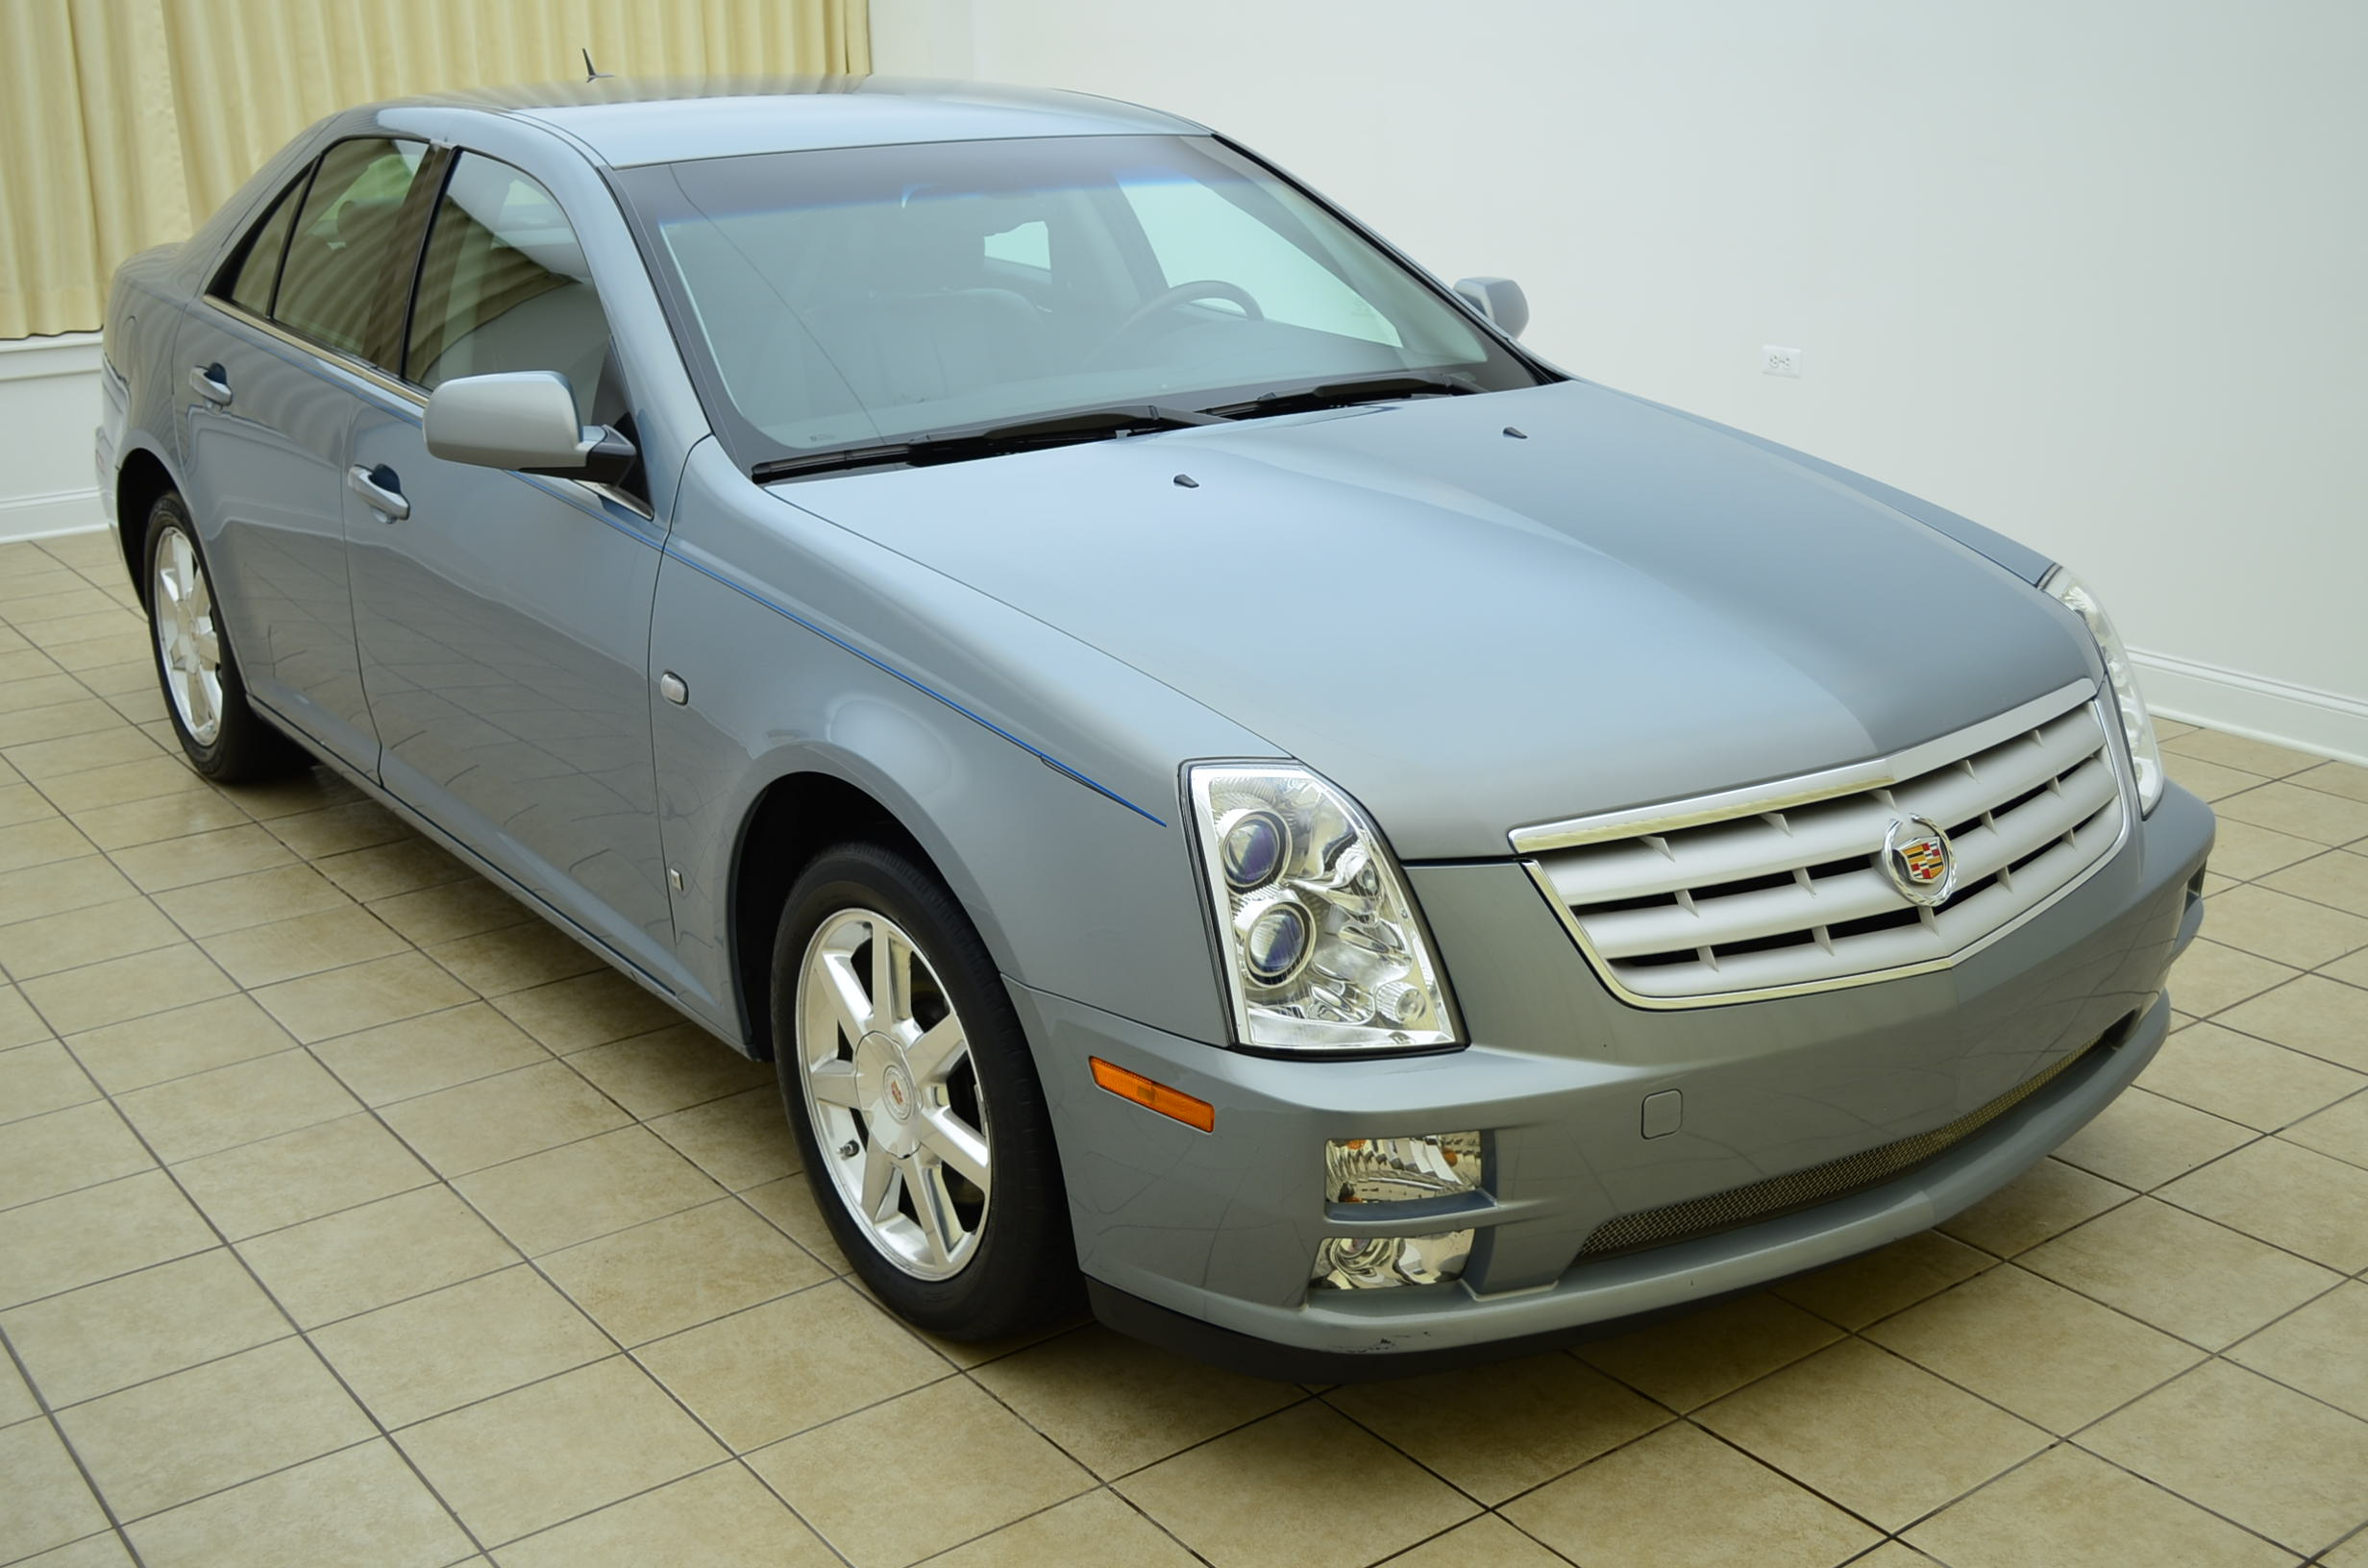 2007 cadillac sts problems defects complaints. Black Bedroom Furniture Sets. Home Design Ideas